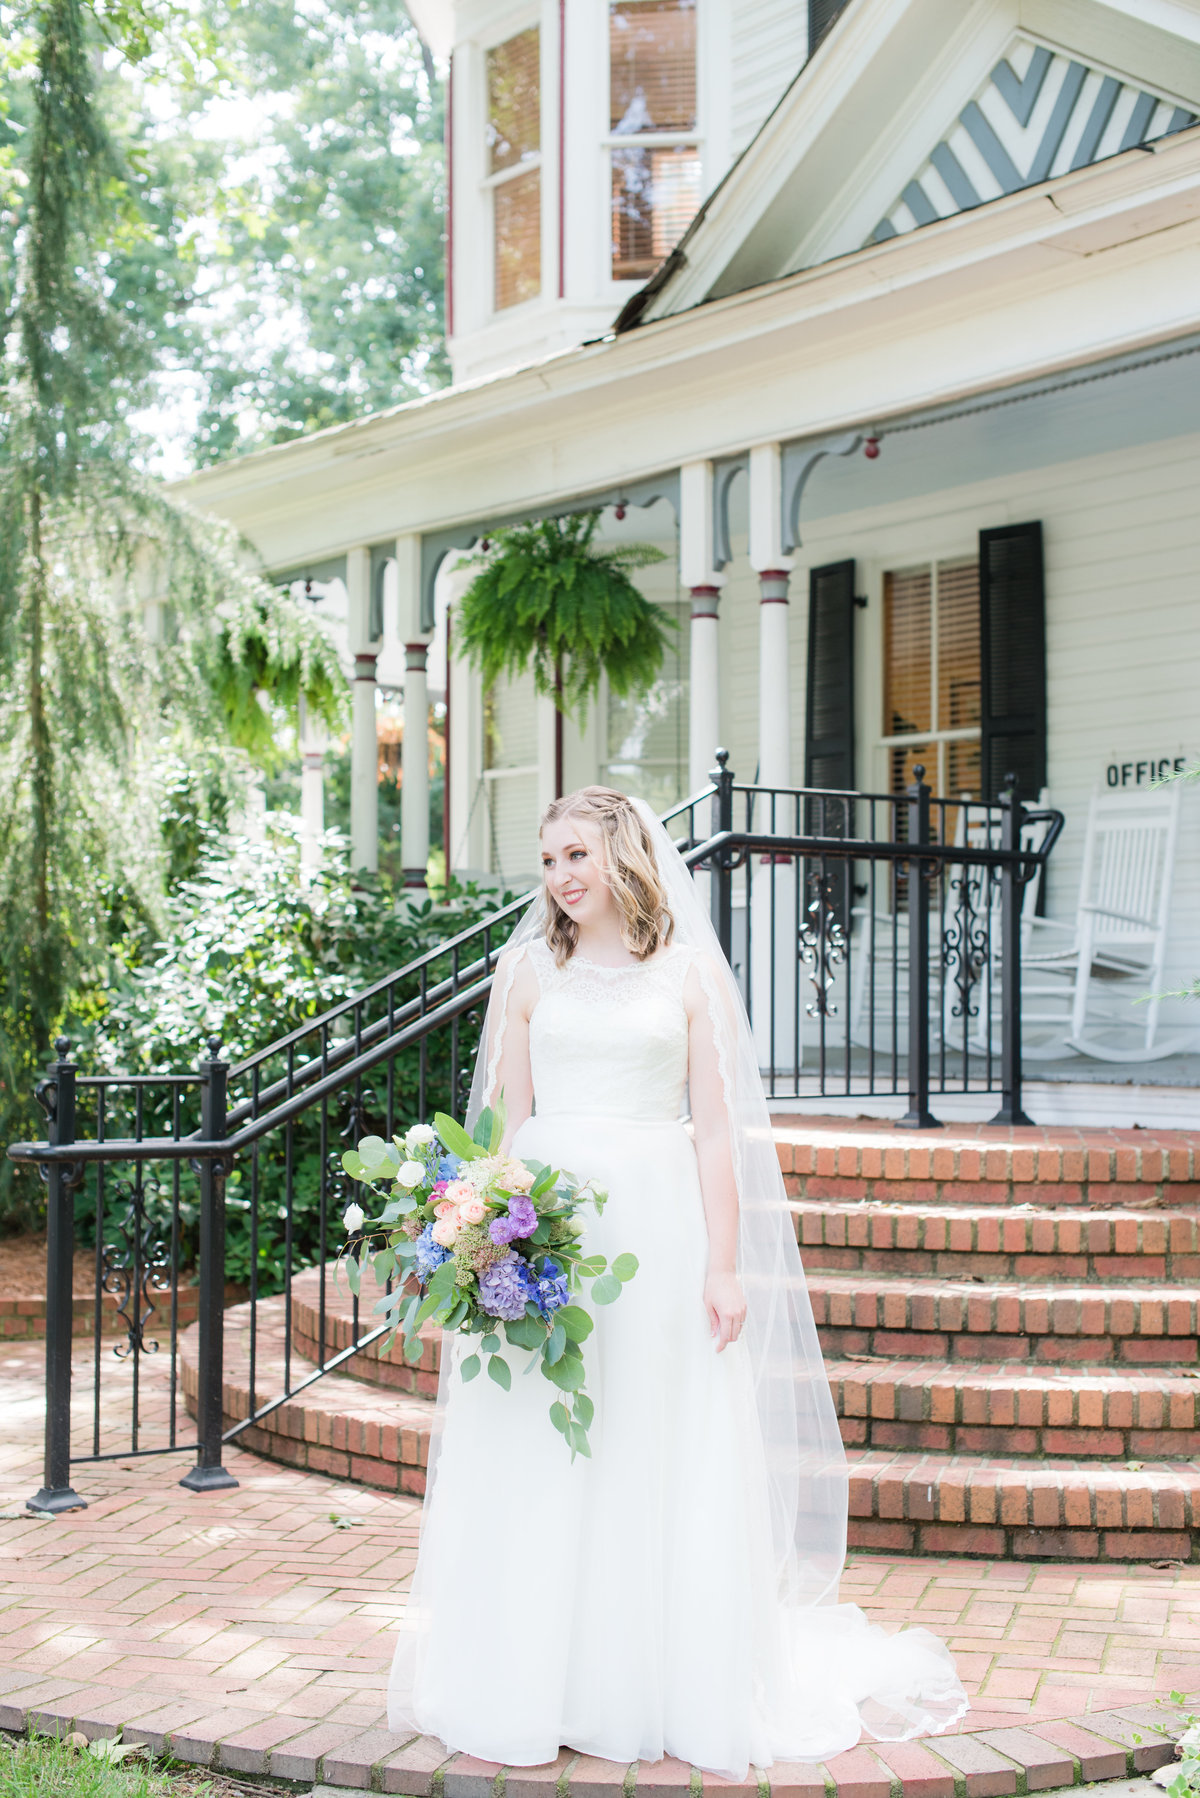 A bride with a lace topped dress and a cathedral length veil holding onto a colorful wedding bouquet looking off to the side in front of the Gardens at Gray Gables